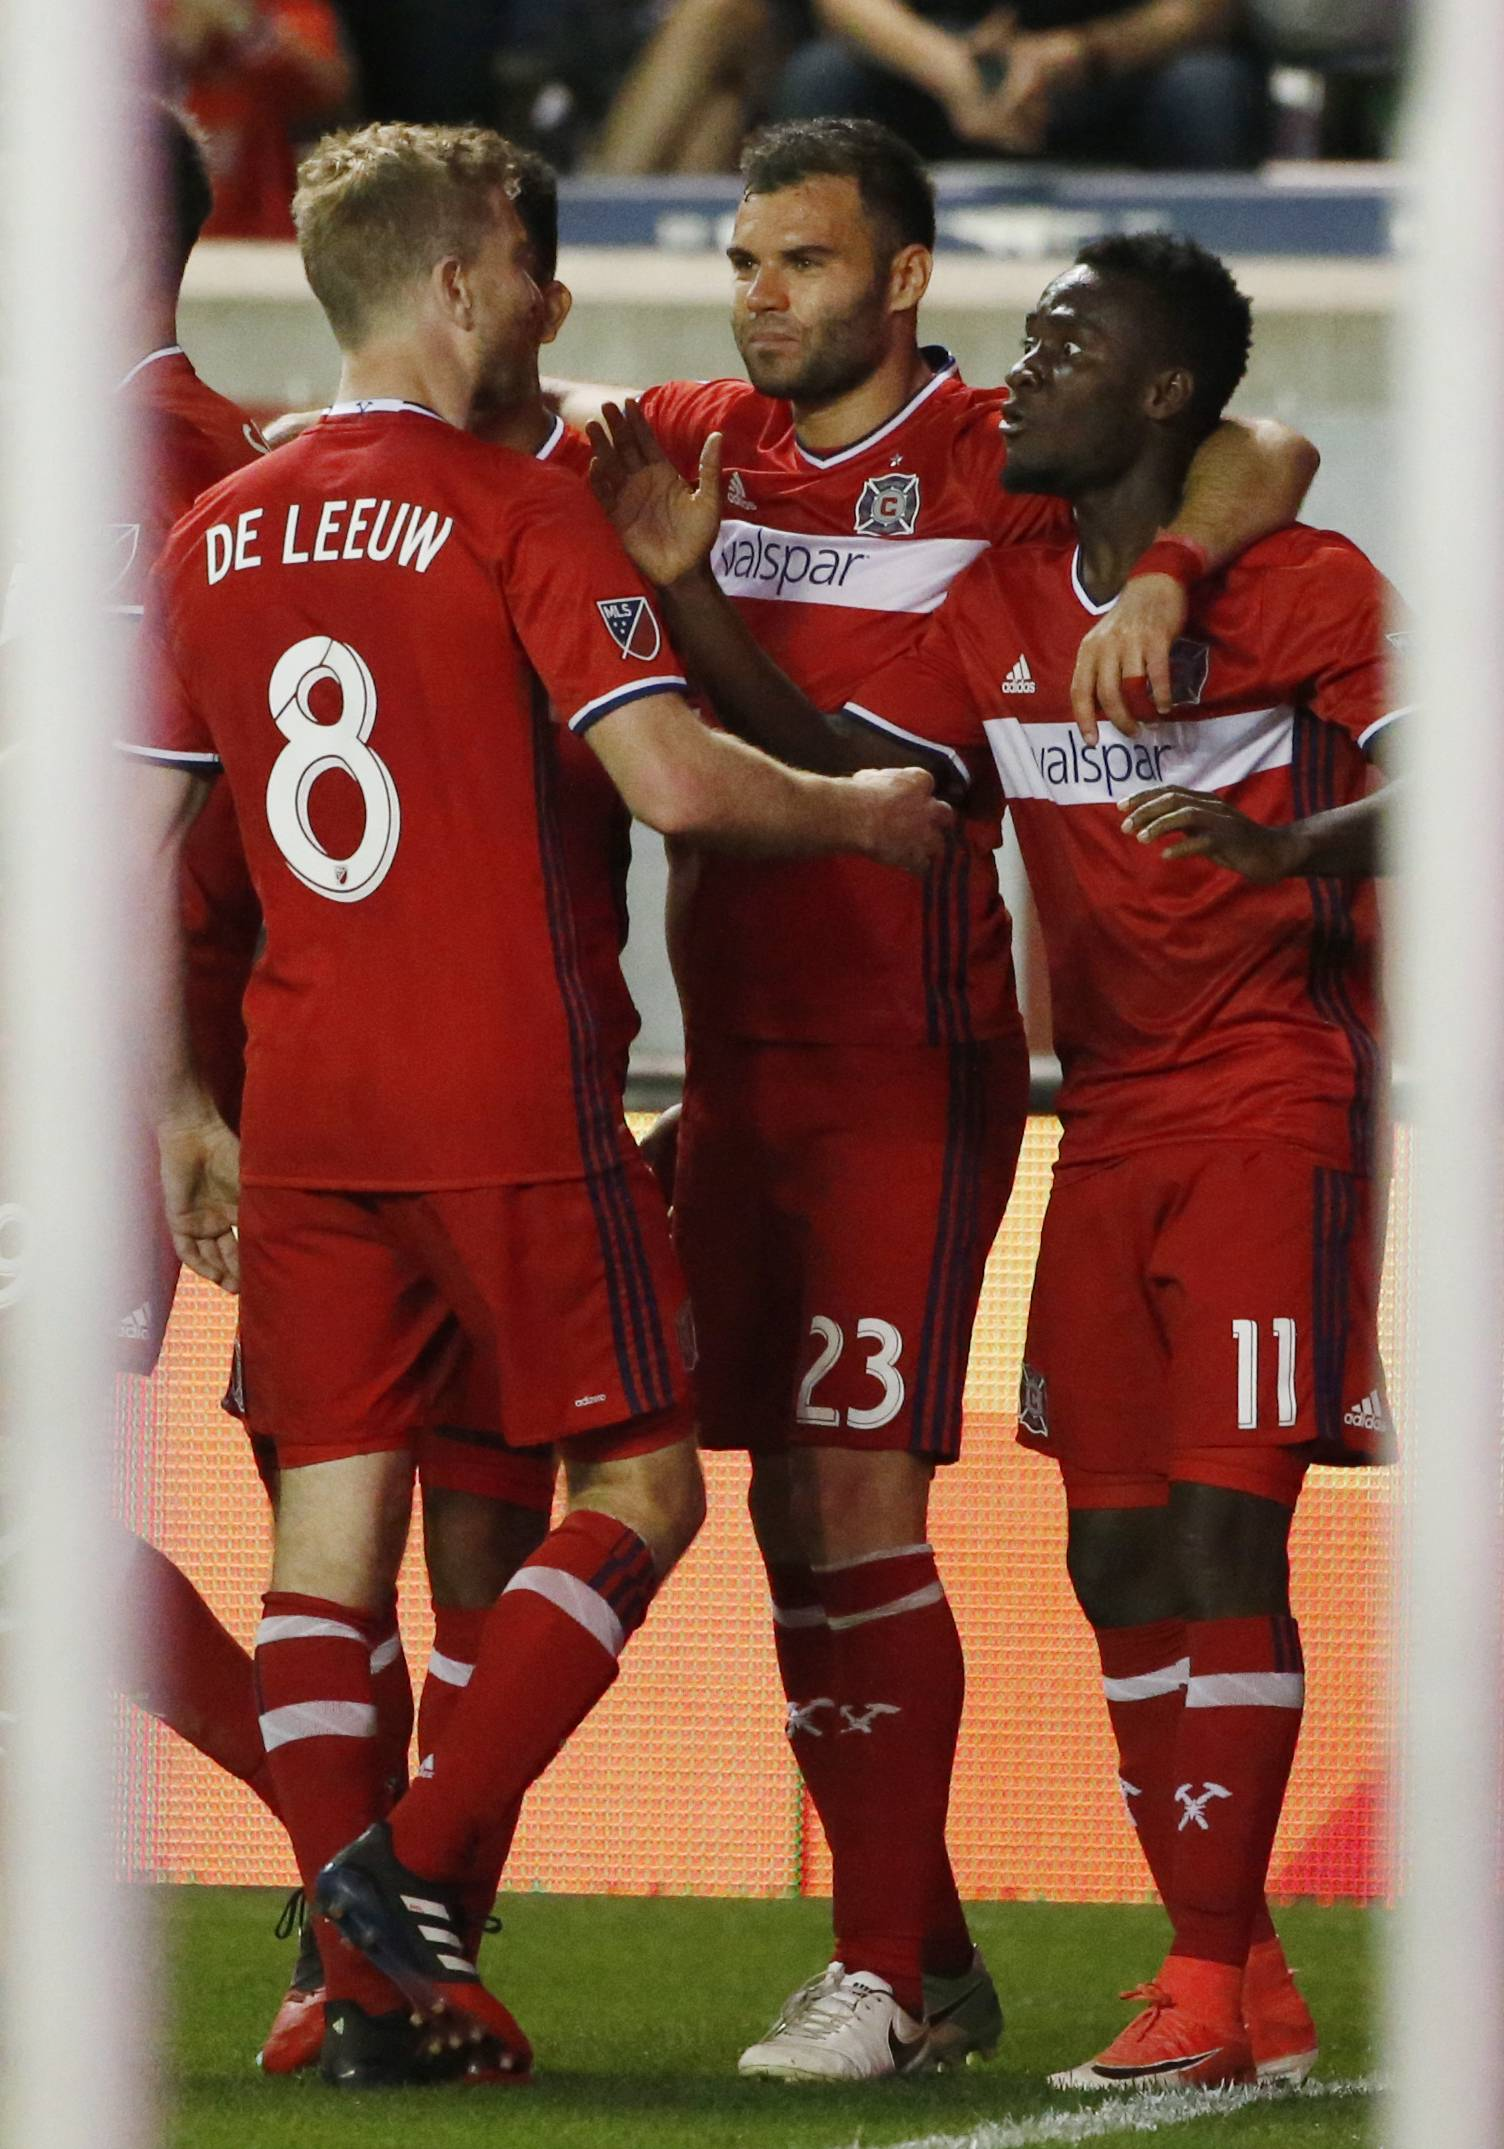 Chicago Fire midfielder David Accam (11) celebrates with forwards Nemanja Nikolic (23) and Michael de Leeuw (8) after scoring a goal against the Colorado Rapids during the second half of an MLS soccer match, Wednesday, May 17, 2017, in Bridgeview, Ill. (AP Photo/Nam Y. Huh)